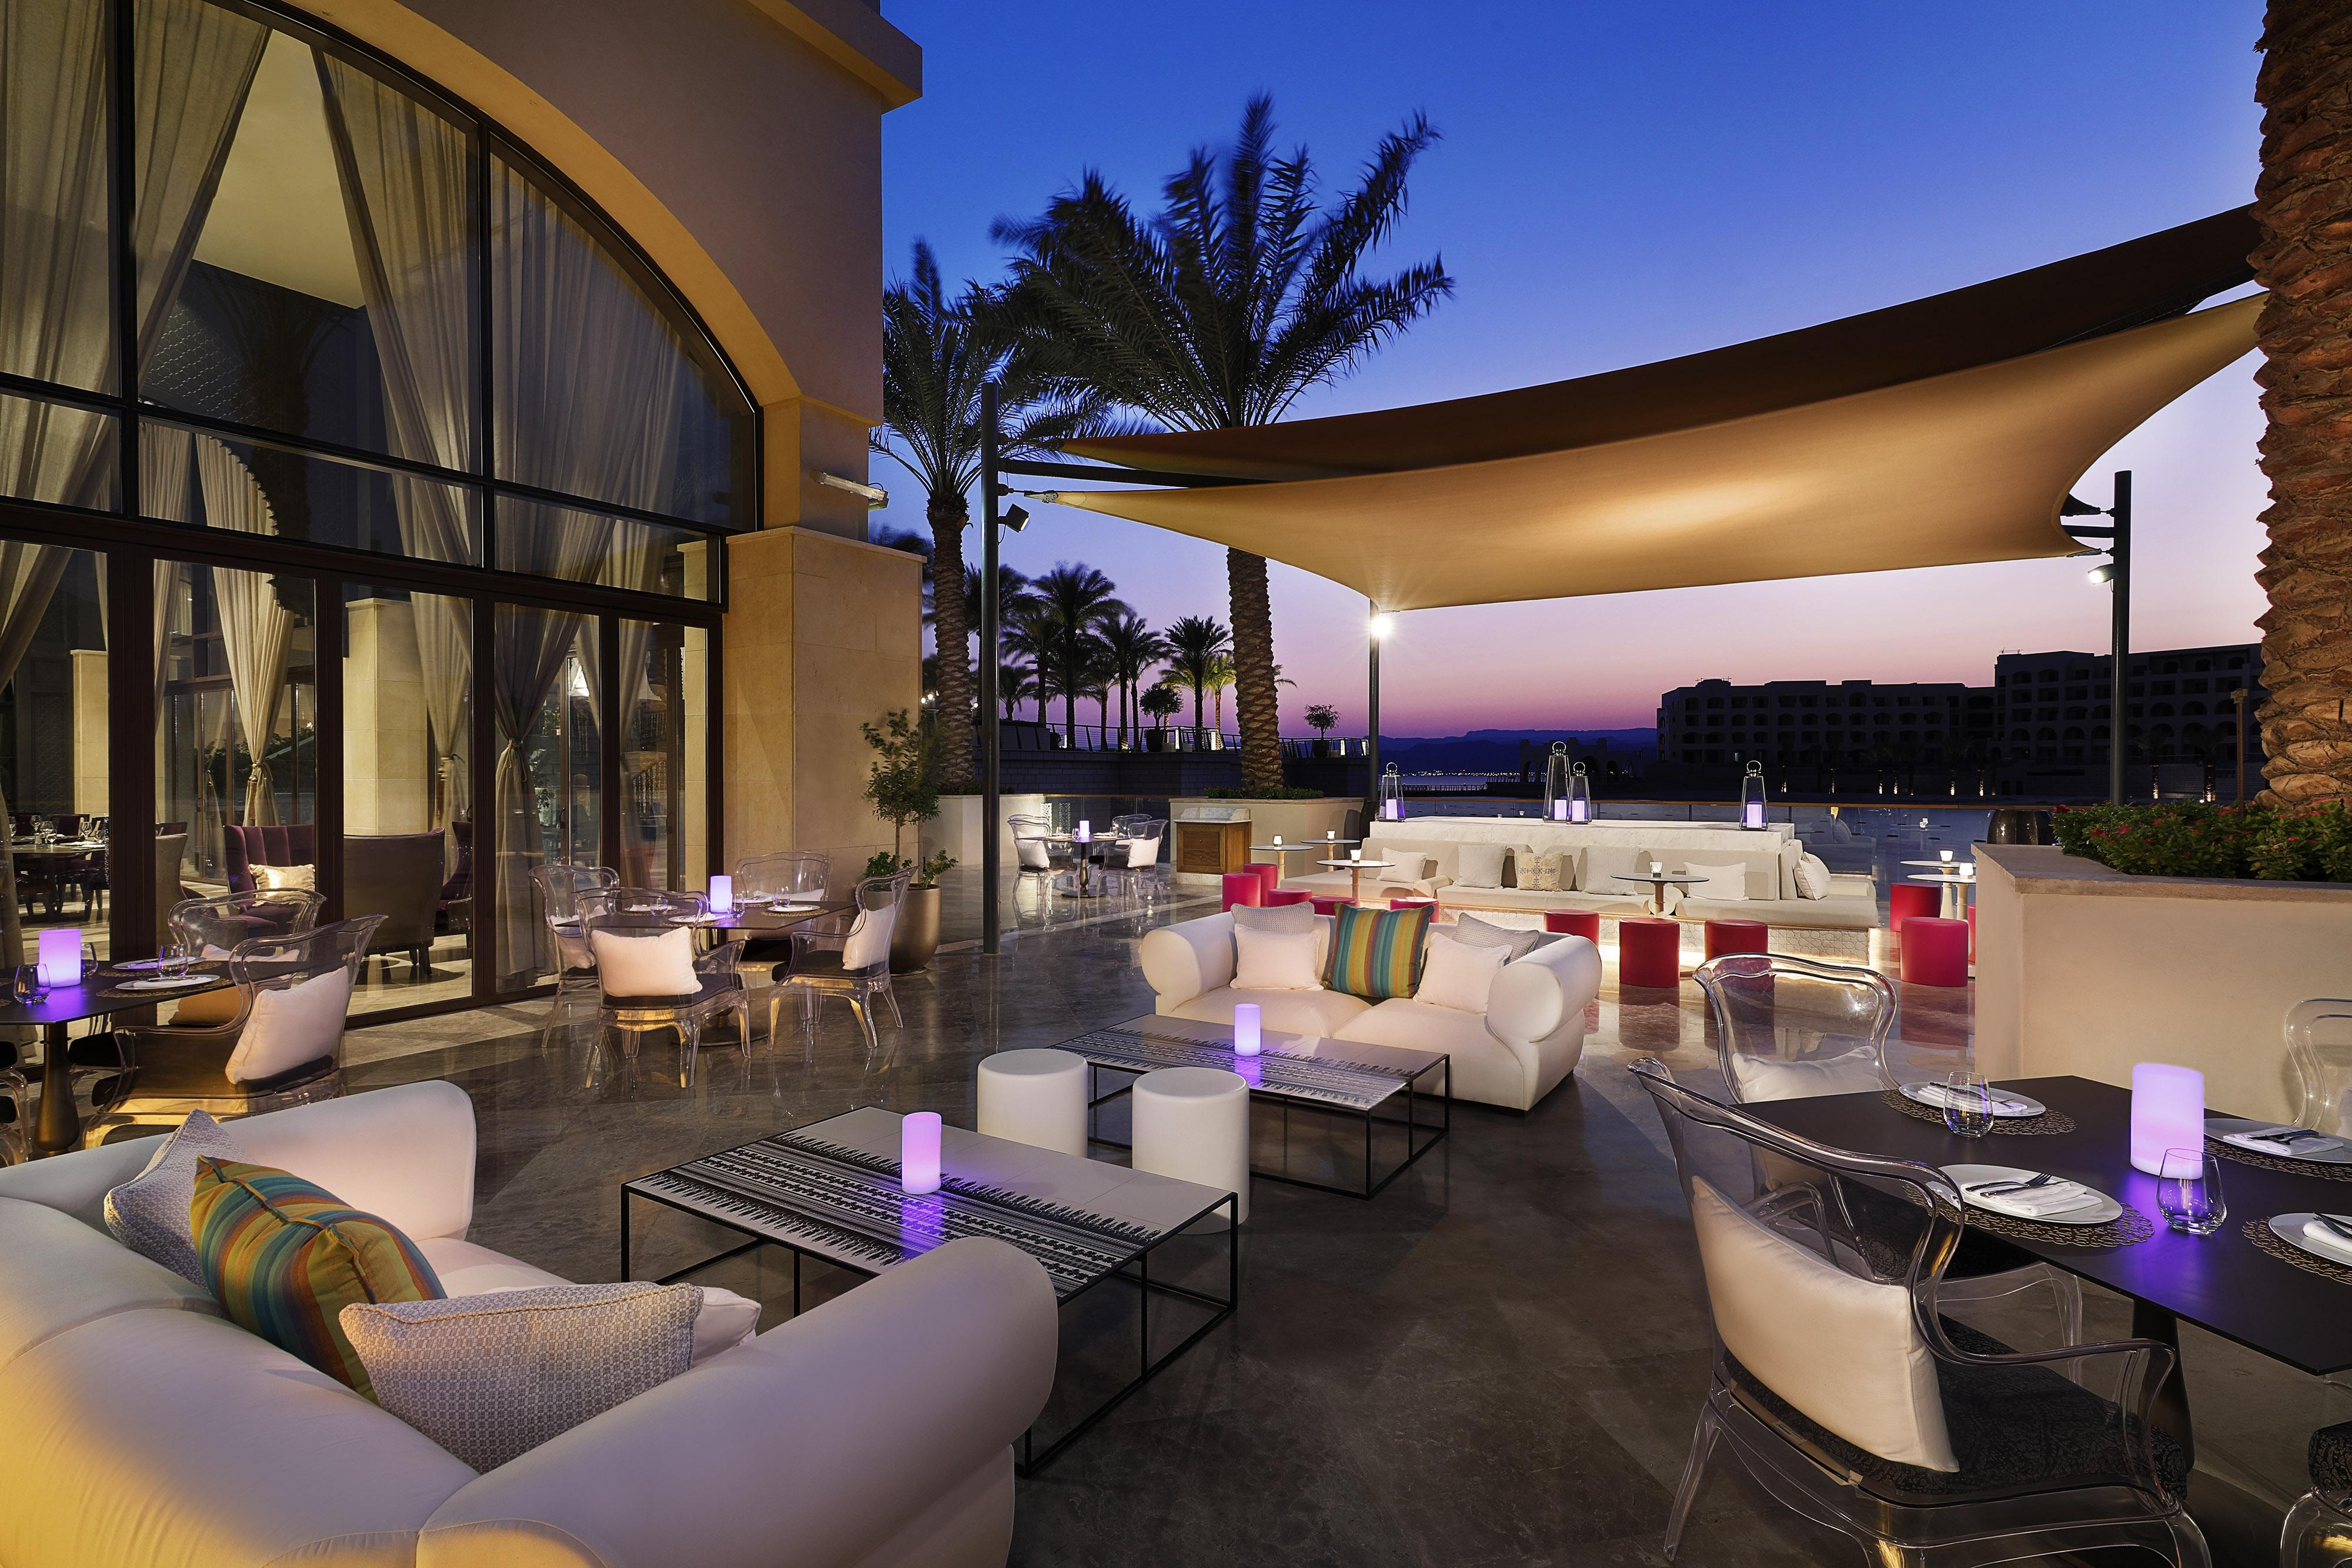 Enjoy the timeless setting and exquisite views of the lagoon at Kubba Levantin, where sophisticated cocktails and conversation flow.